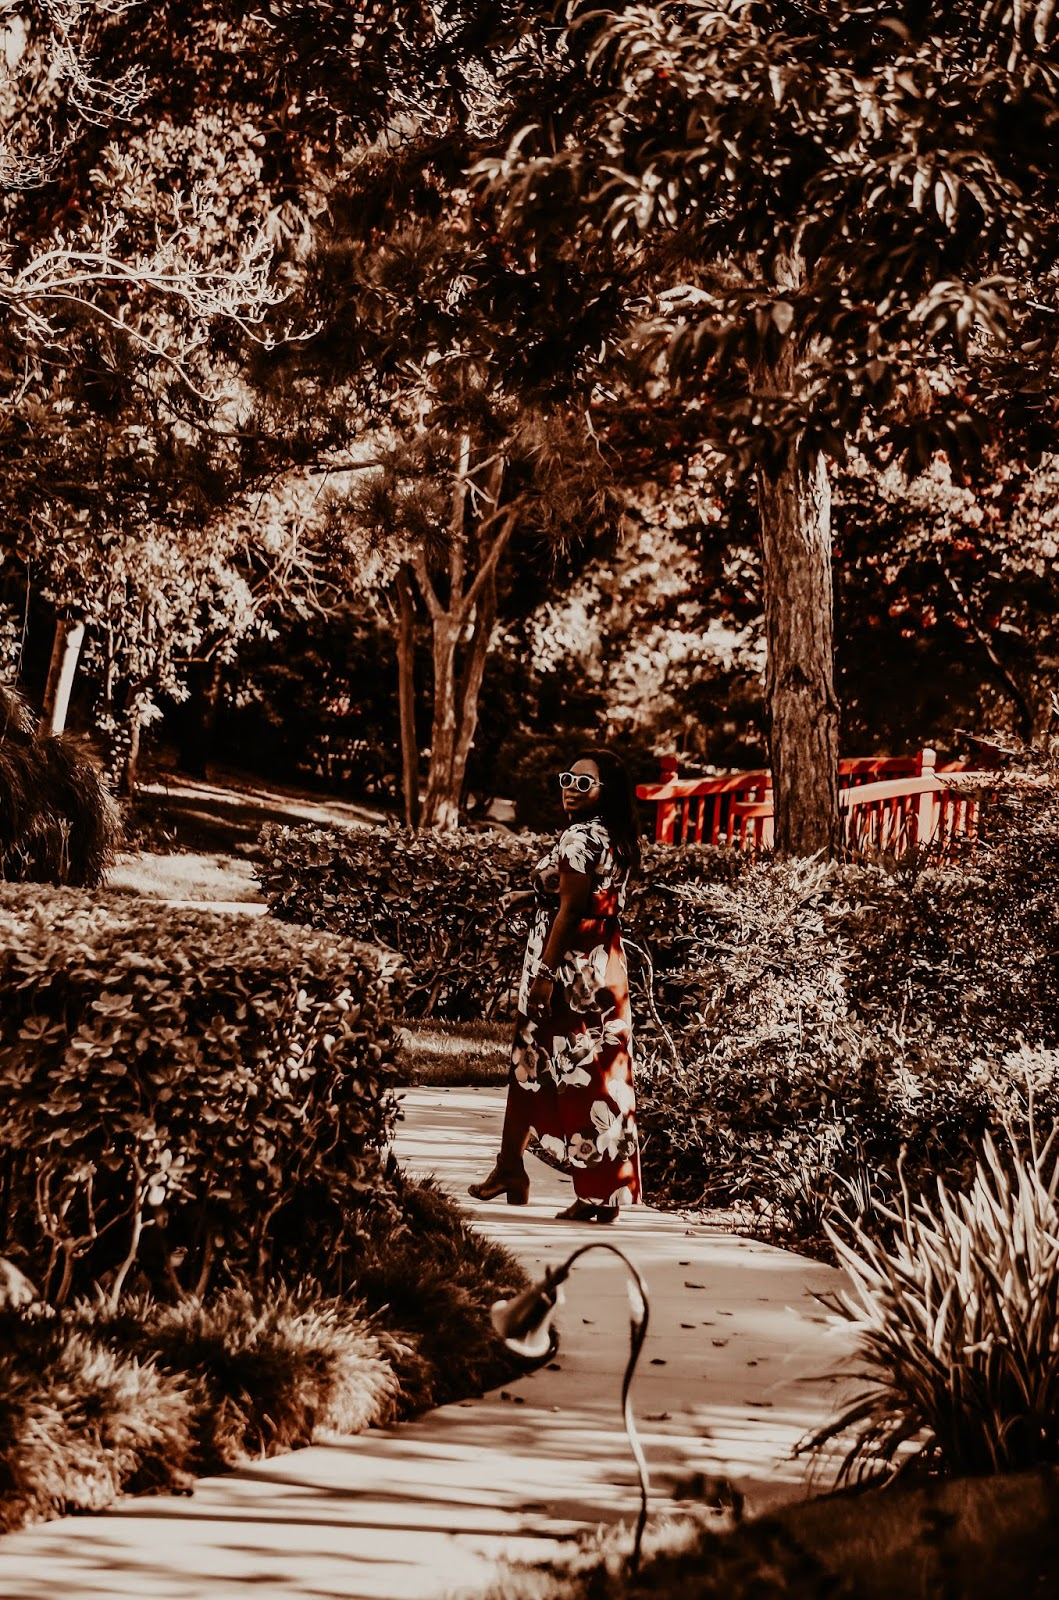 the-most-memorable-end-of-summer2019-staycation-at-the-langham-huntington-hotel-pasadena-california-japanese-garden